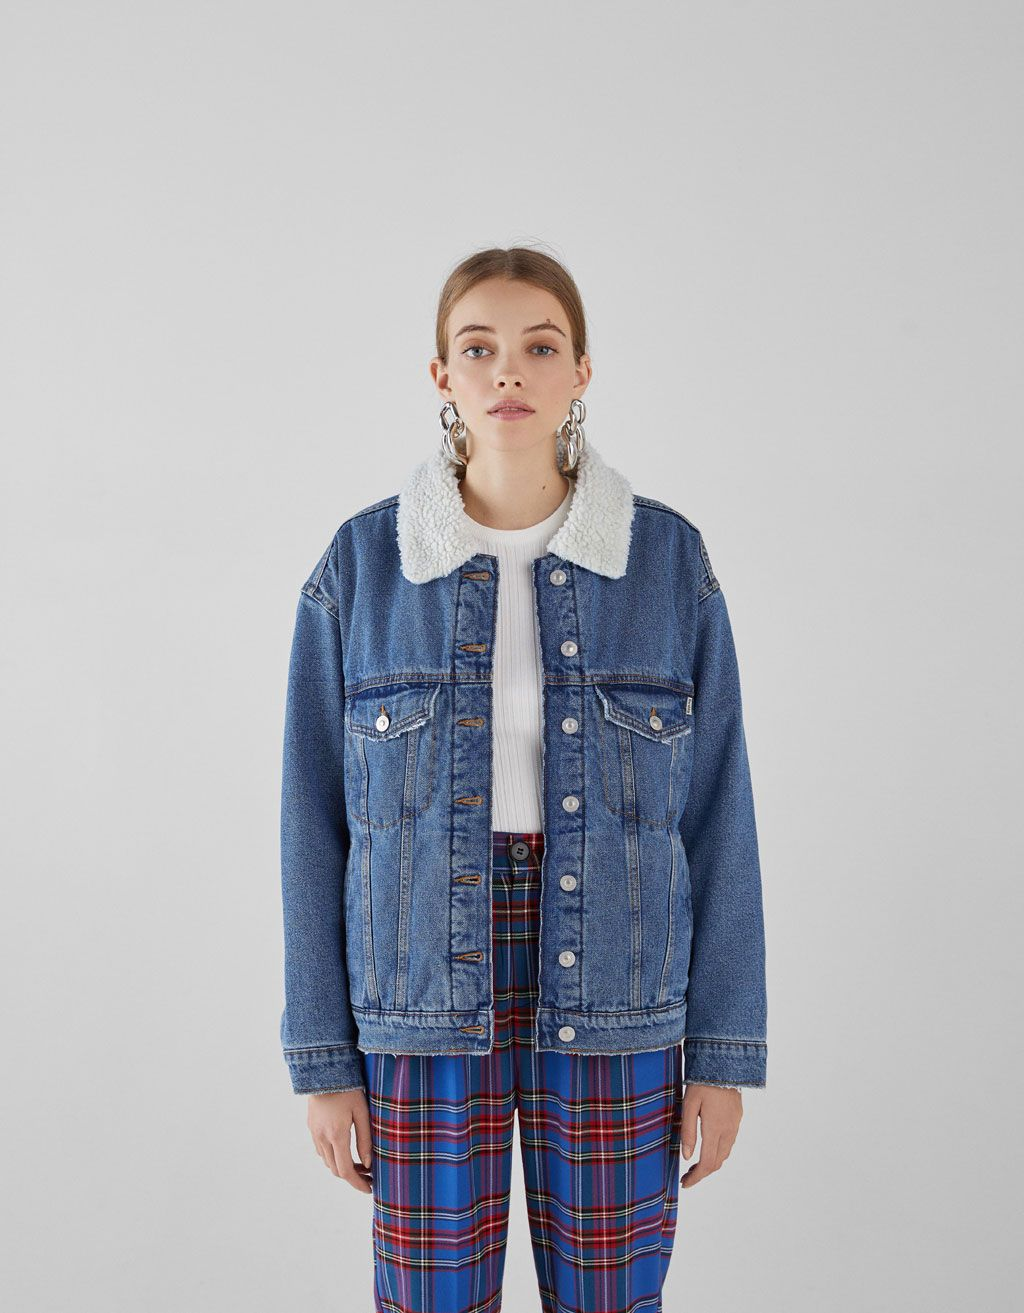 915518cc5230 Denim jacket with faux shearling lining. Discover this and many more items  in Bershka with new products every week